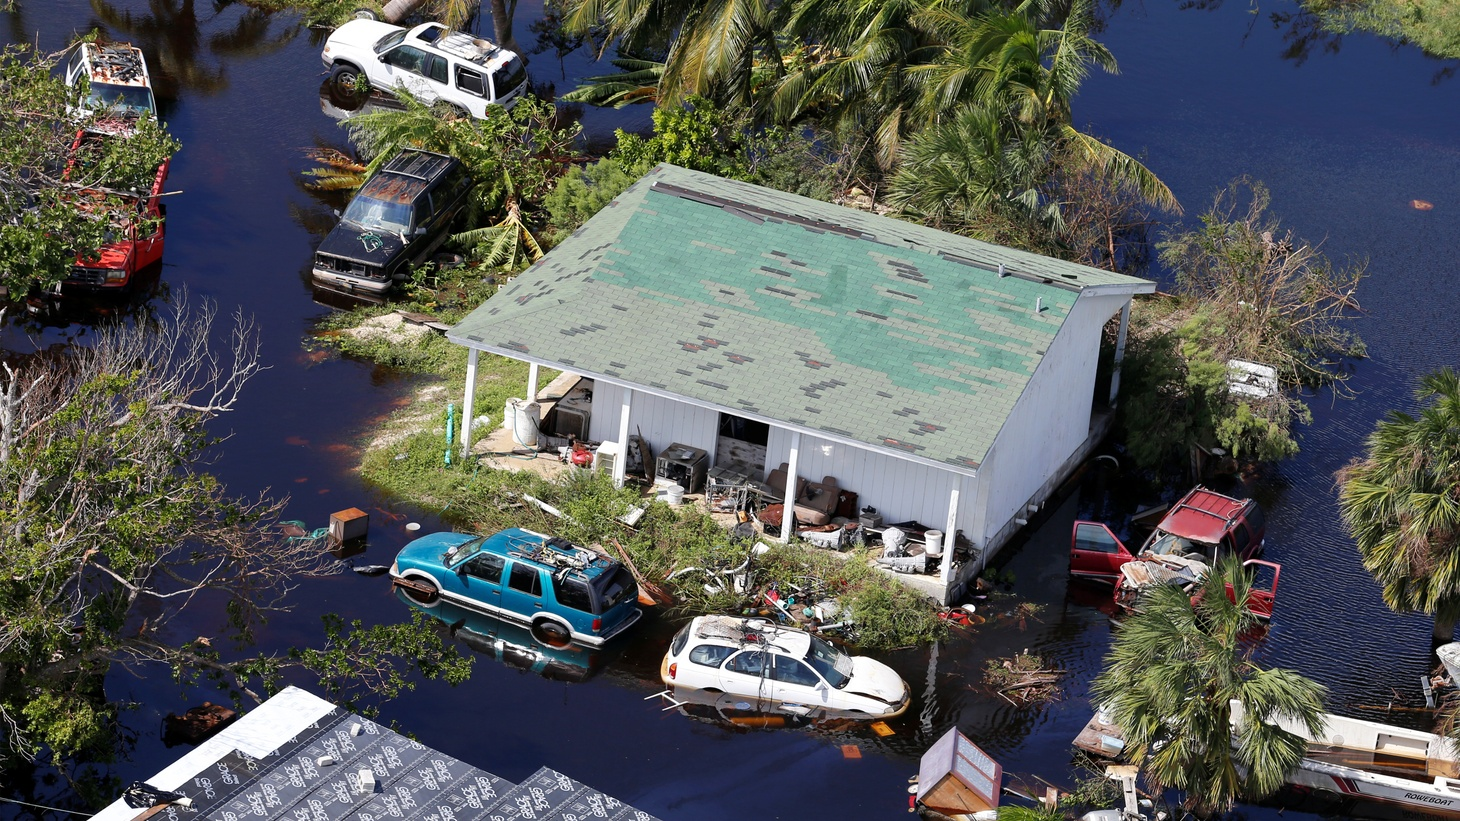 An aerial view shows devastation after hurricane Dorian hit the Grand Bahama Island in the Bahamas, September 4, 2019.